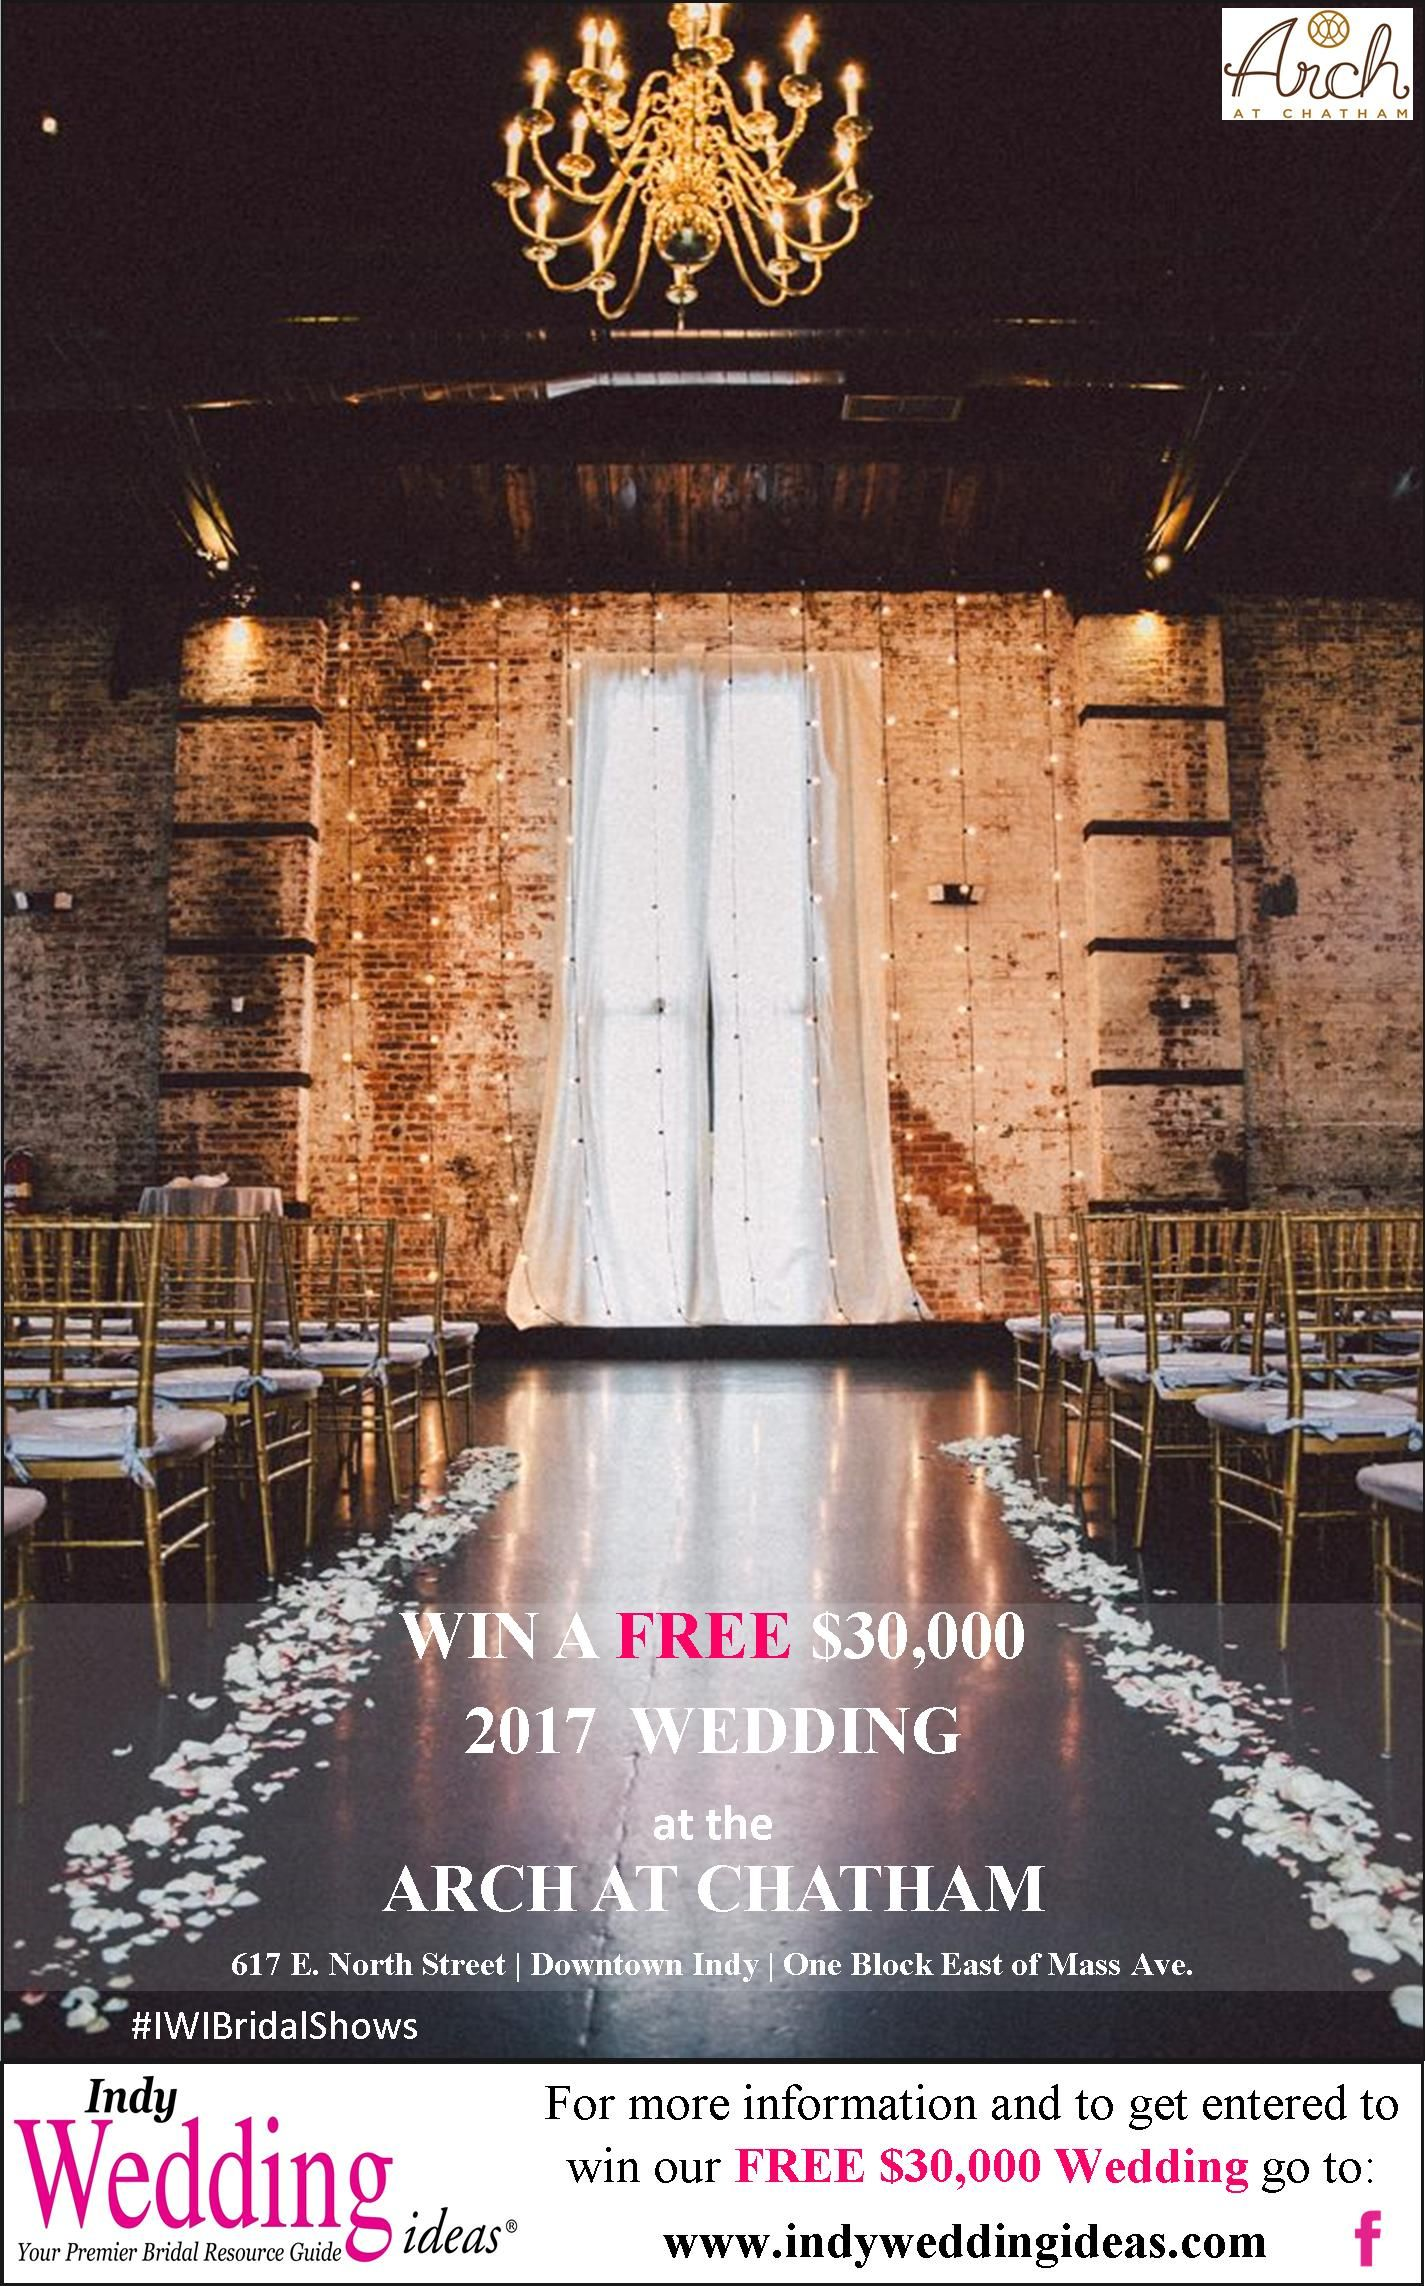 Free 2017 Dream Wedding Giveaway Get Entered At Www Indyweddingideas